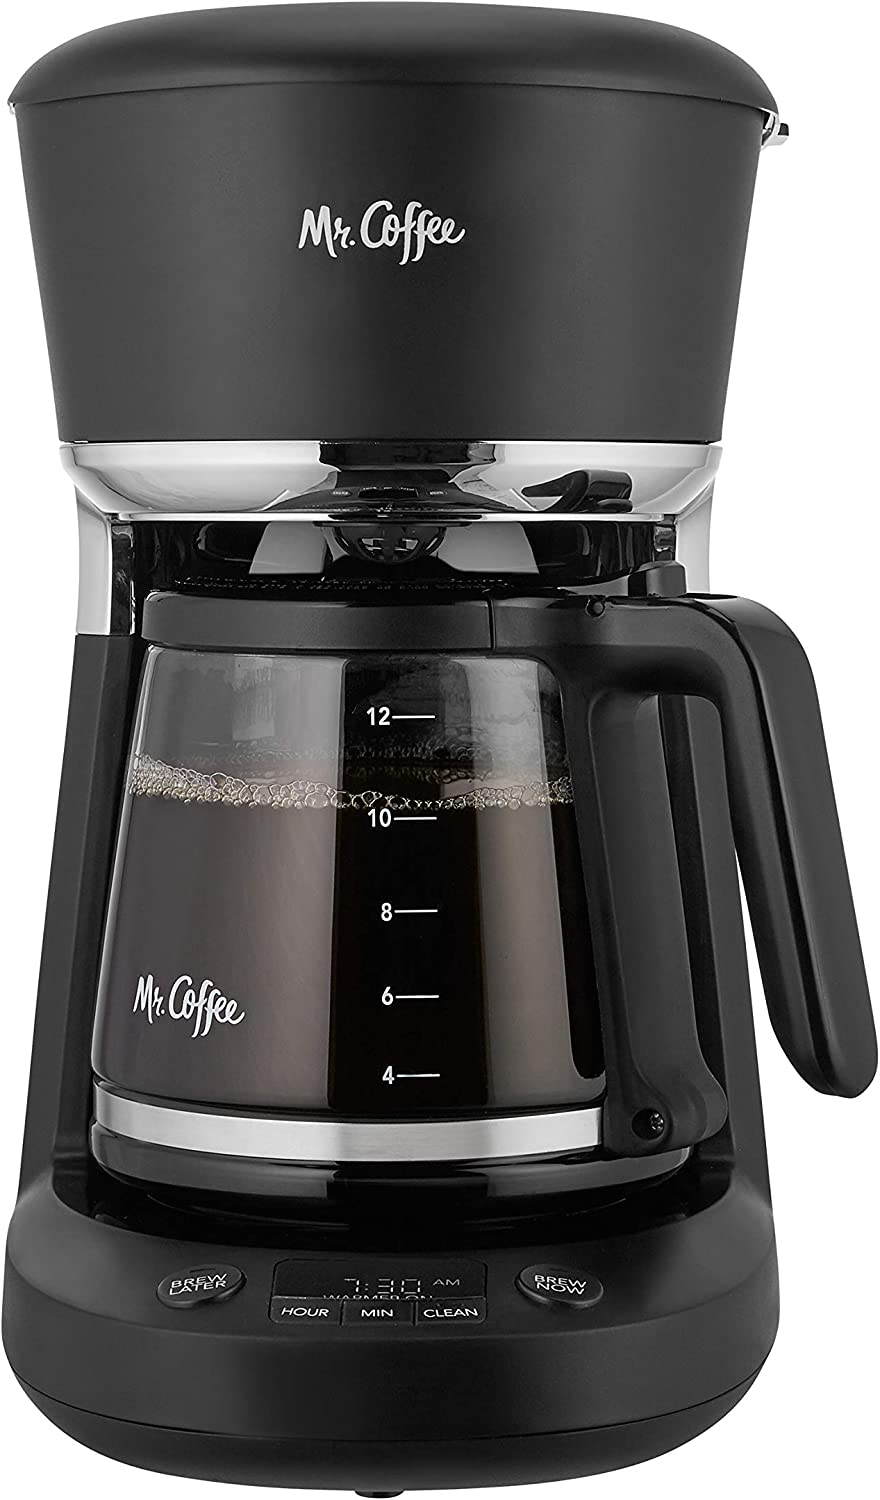 Mr. Coffee 2097827 Programmable Coffee Maker with Dishwashable Design Advanced Water Filtration Black Chrome, 12 Cup